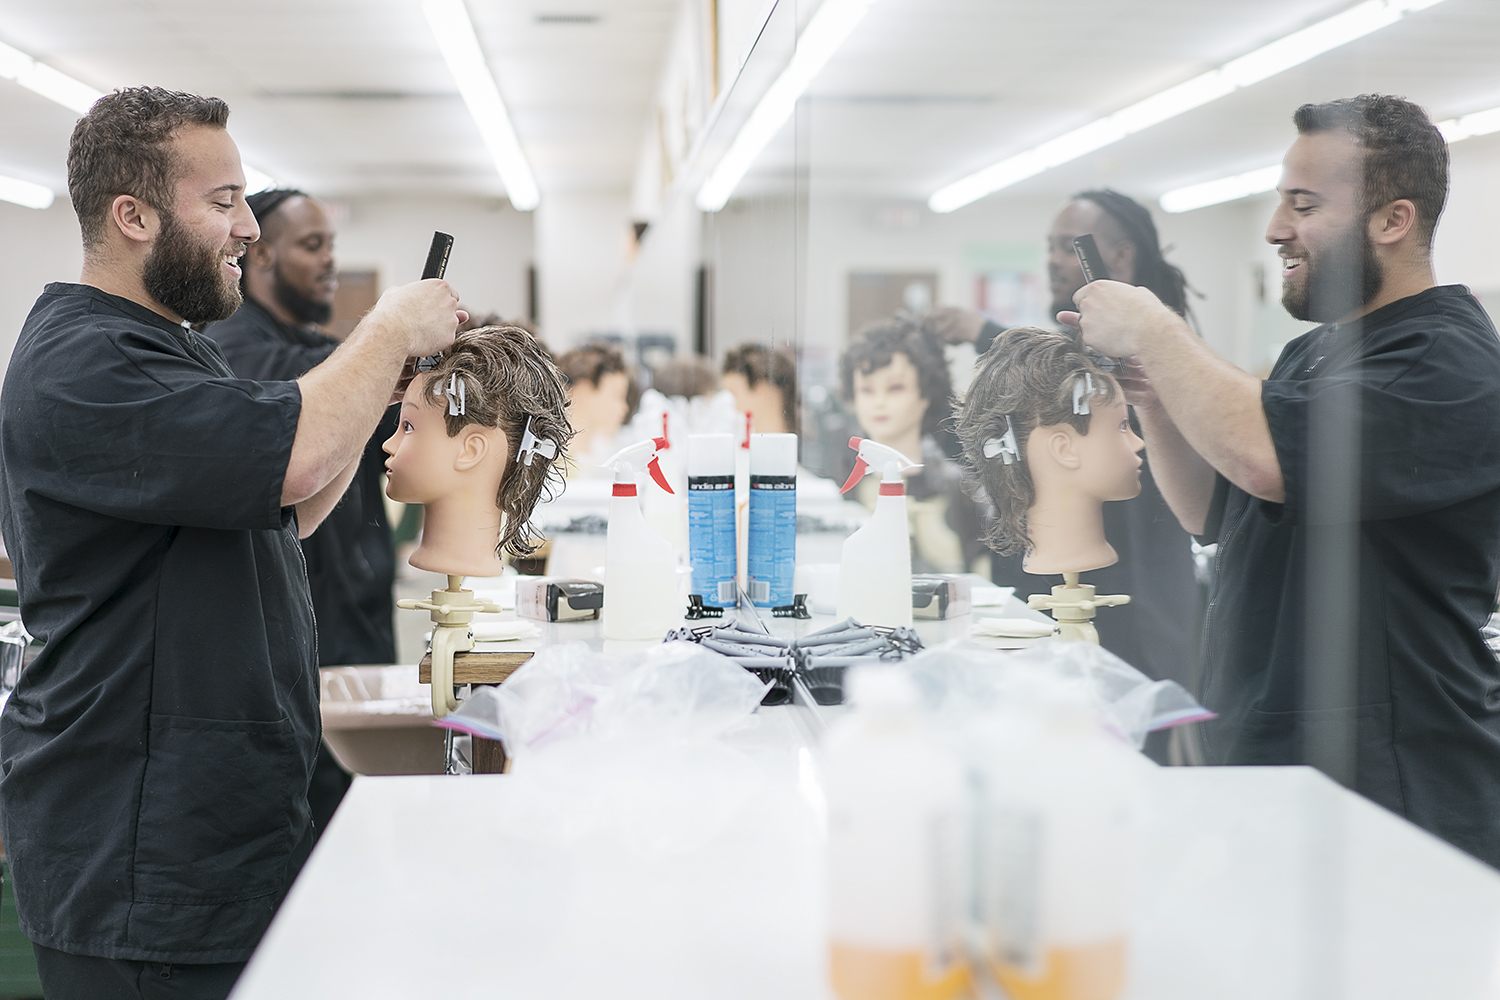 Flint, MI - Tuesday, February 6, 2018: Junior barbers Cole Stomp, 19, from Davison, and Tony Atlas, 32, from Flint practice on mannequins at the Flint Institute of Barbering.